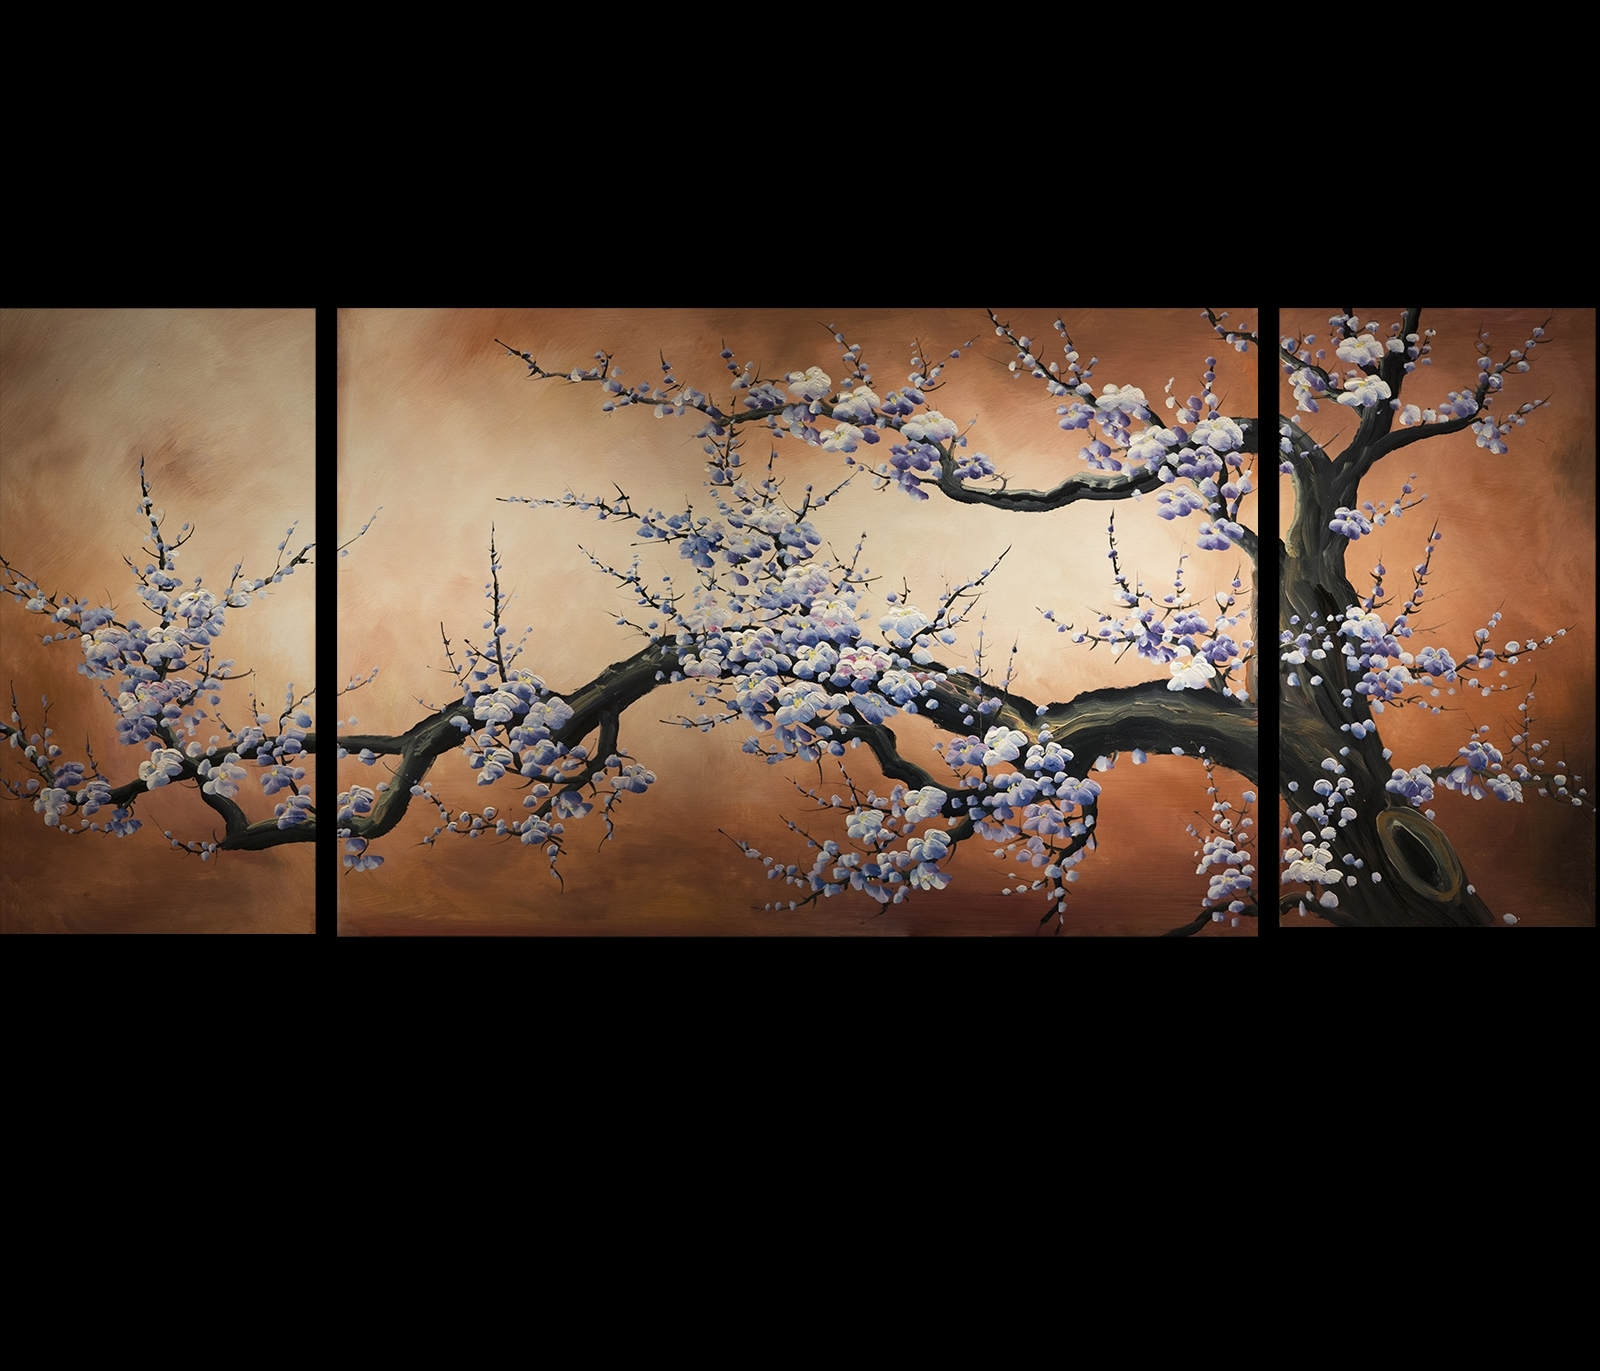 Abstract Art Prints On Canvas Modern Art Cherry Blossom Painting Within Recent Cherry Blossom Oil Painting Modern Abstract Wall Art (View 5 of 20)